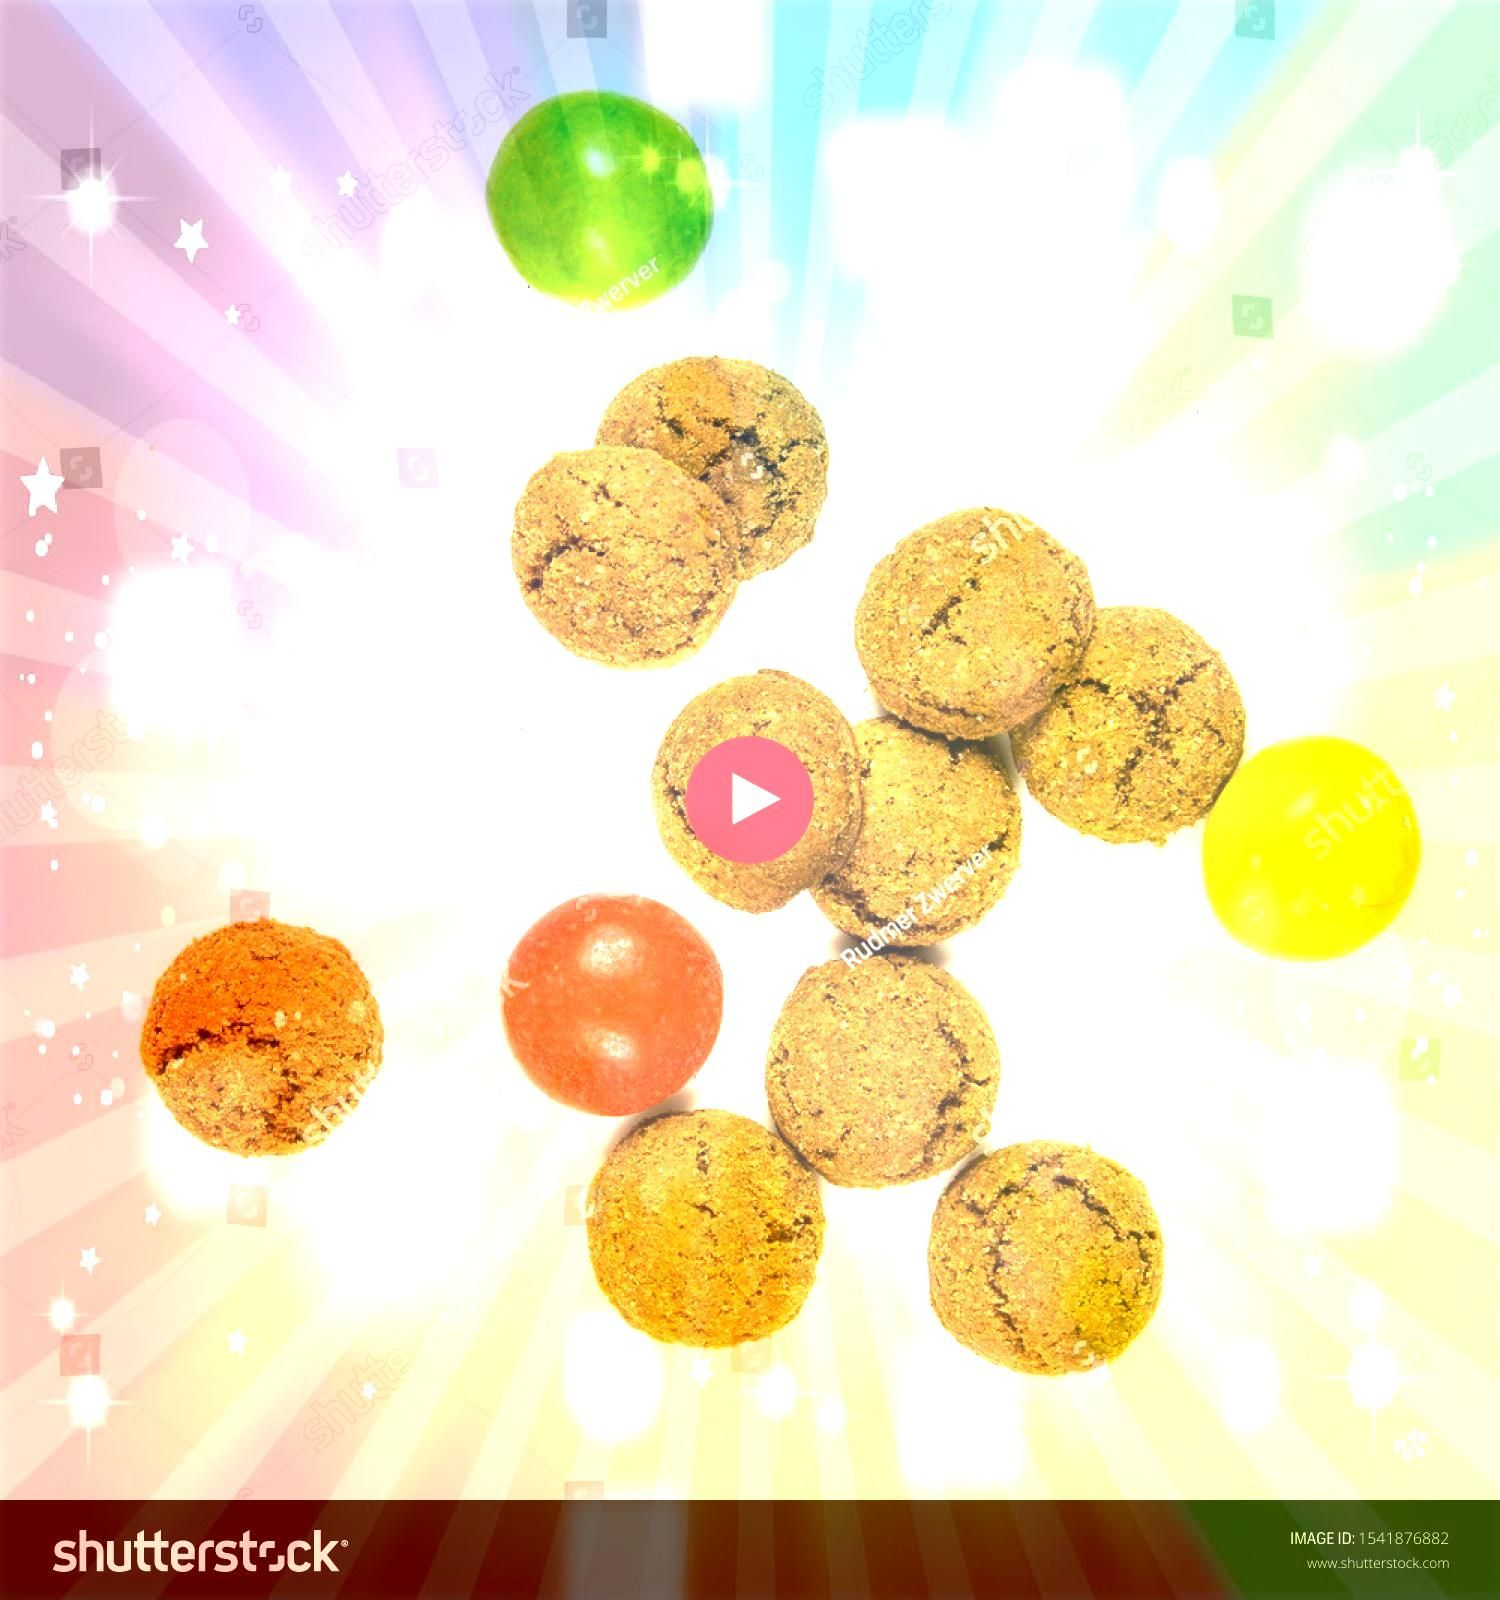 of scattered pepernoten cookies and sweets from above on white background for annual Sinterklaas holiday event in the Netherlands on december 5th Group of scattered peper...